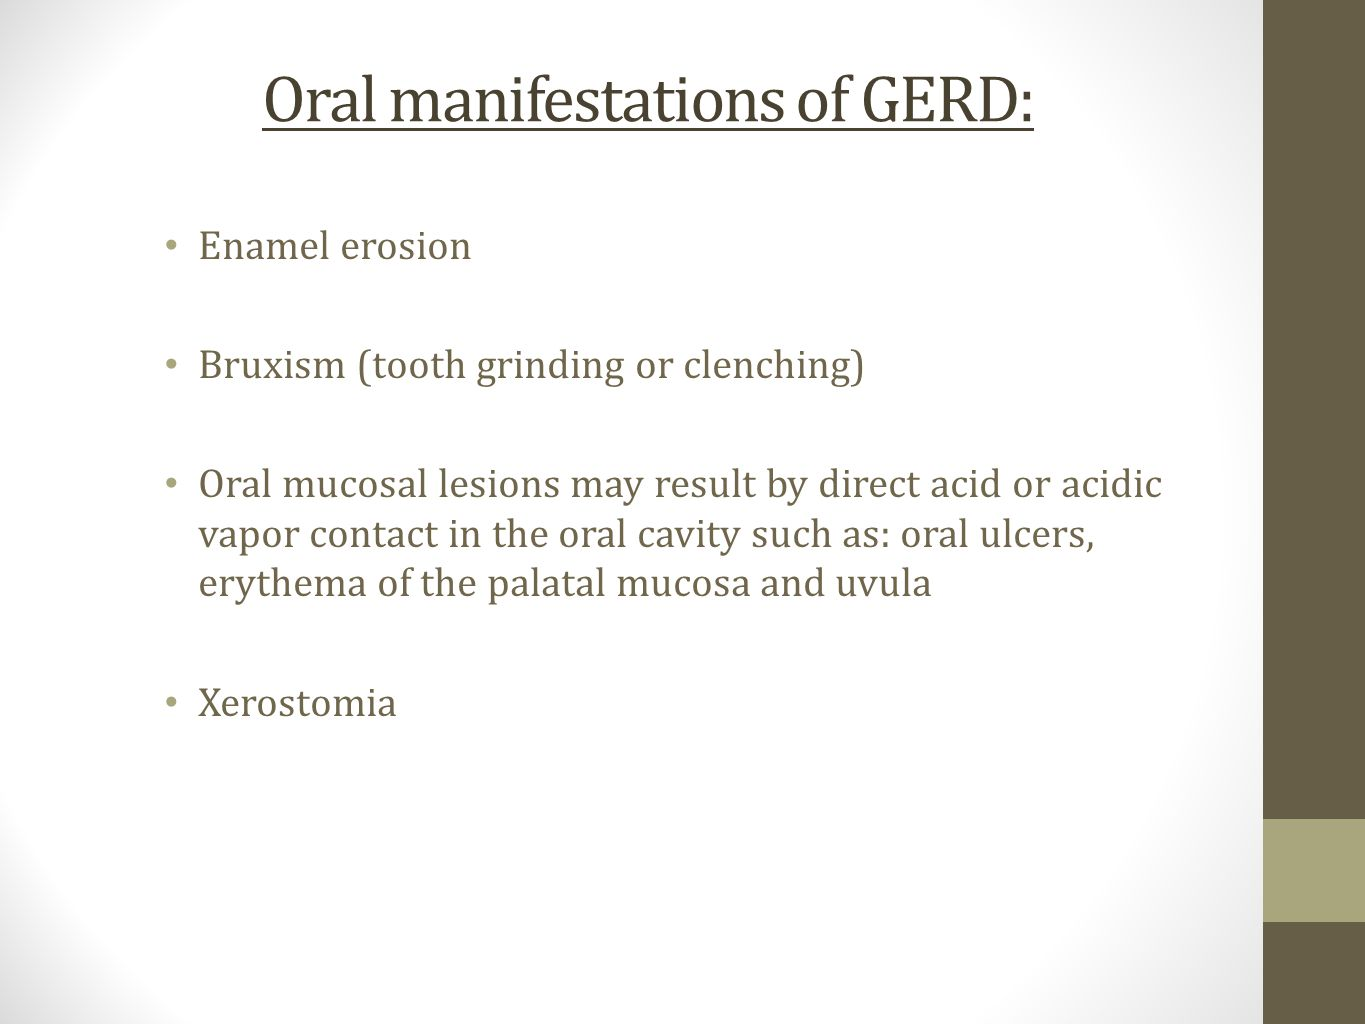 Oral manifestations of GERD: Enamel erosion Bruxism (tooth grinding or clenching) Oral mucosal lesions may result by direct acid or acidic vapor contact in the oral cavity such as: oral ulcers, erythema of the palatal mucosa and uvula Xerostomia